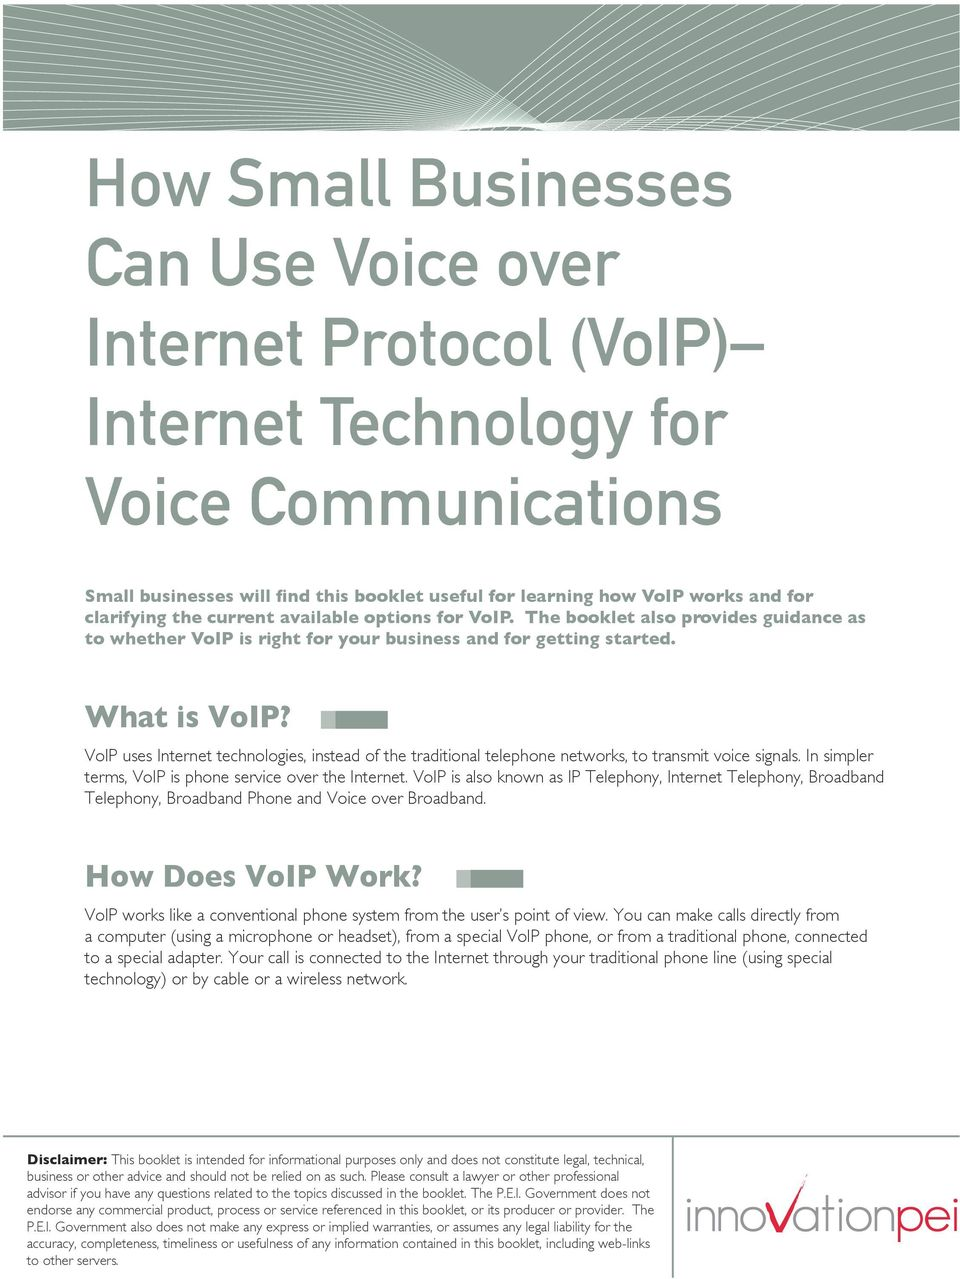 VoIP uses Internet technologies, instead of the traditional telephone networks, to transmit voice signals. In simpler terms, VoIP is phone service over the Internet.